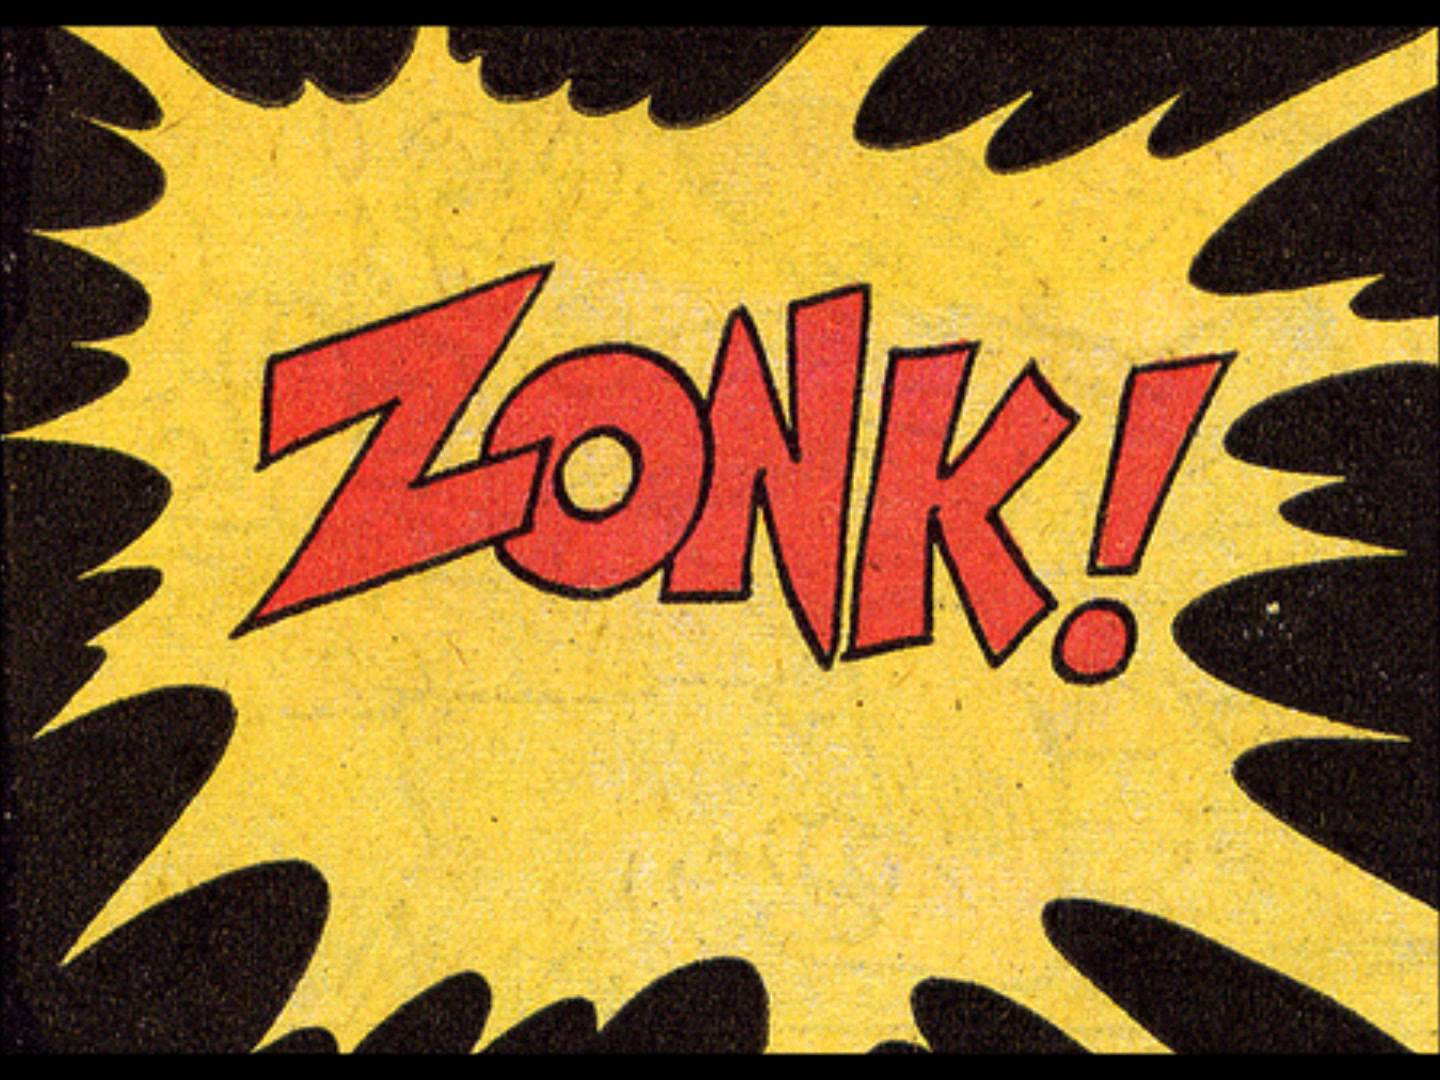 Zonk! in a comic book bubble